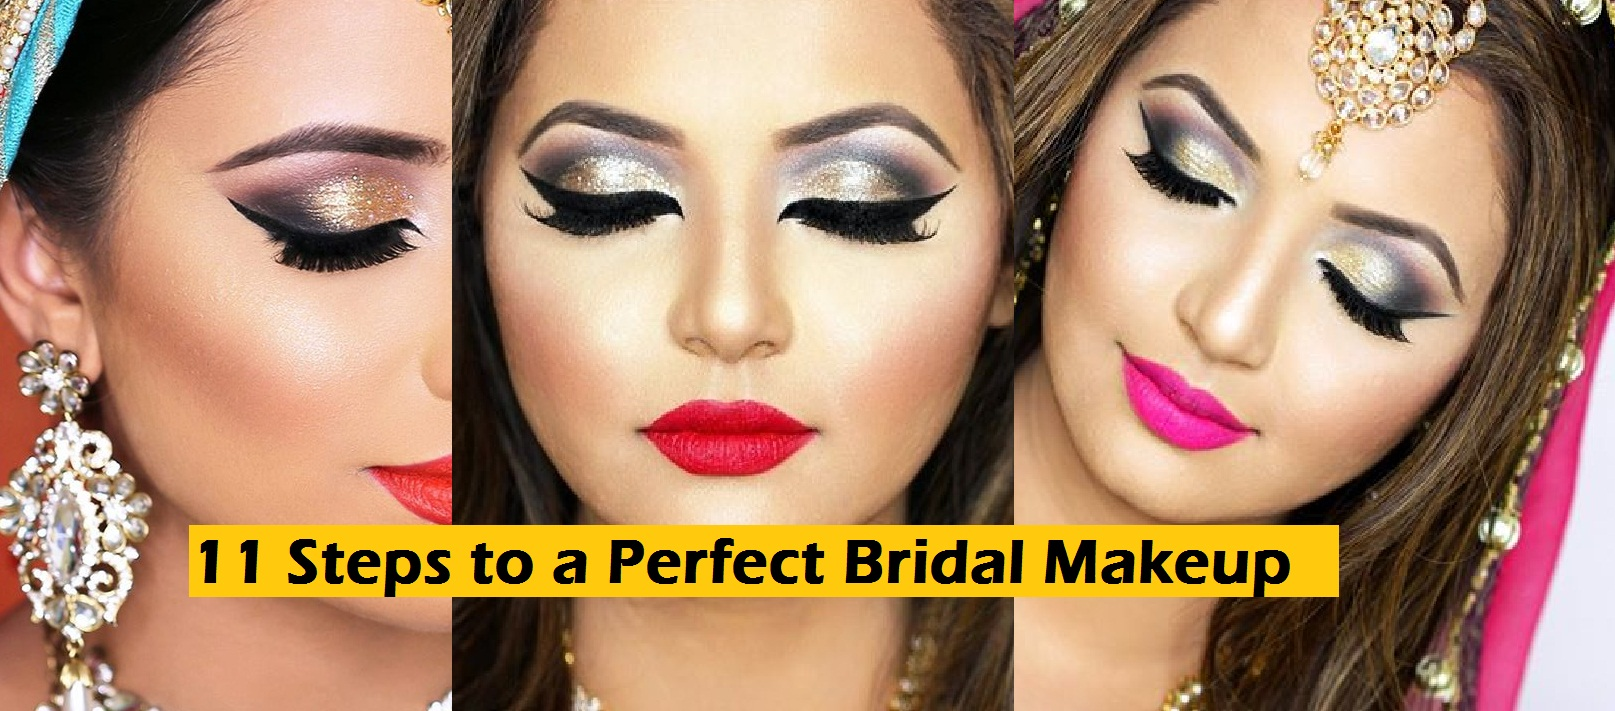 11 Steps to a Perfect Bridal Makeup